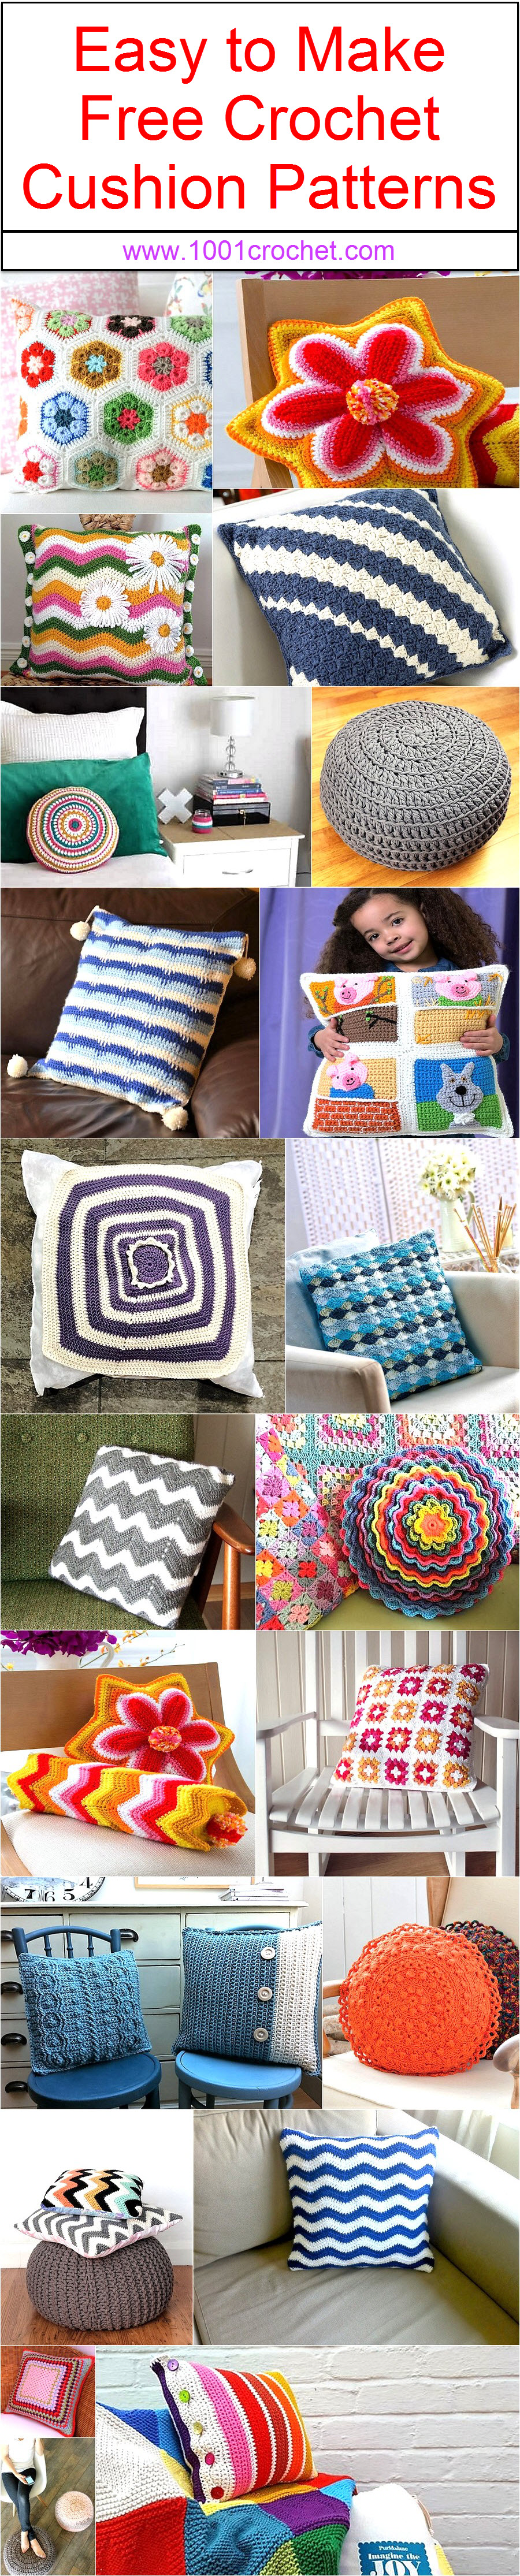 easy-to-make-free-crochet-cushion-patterns